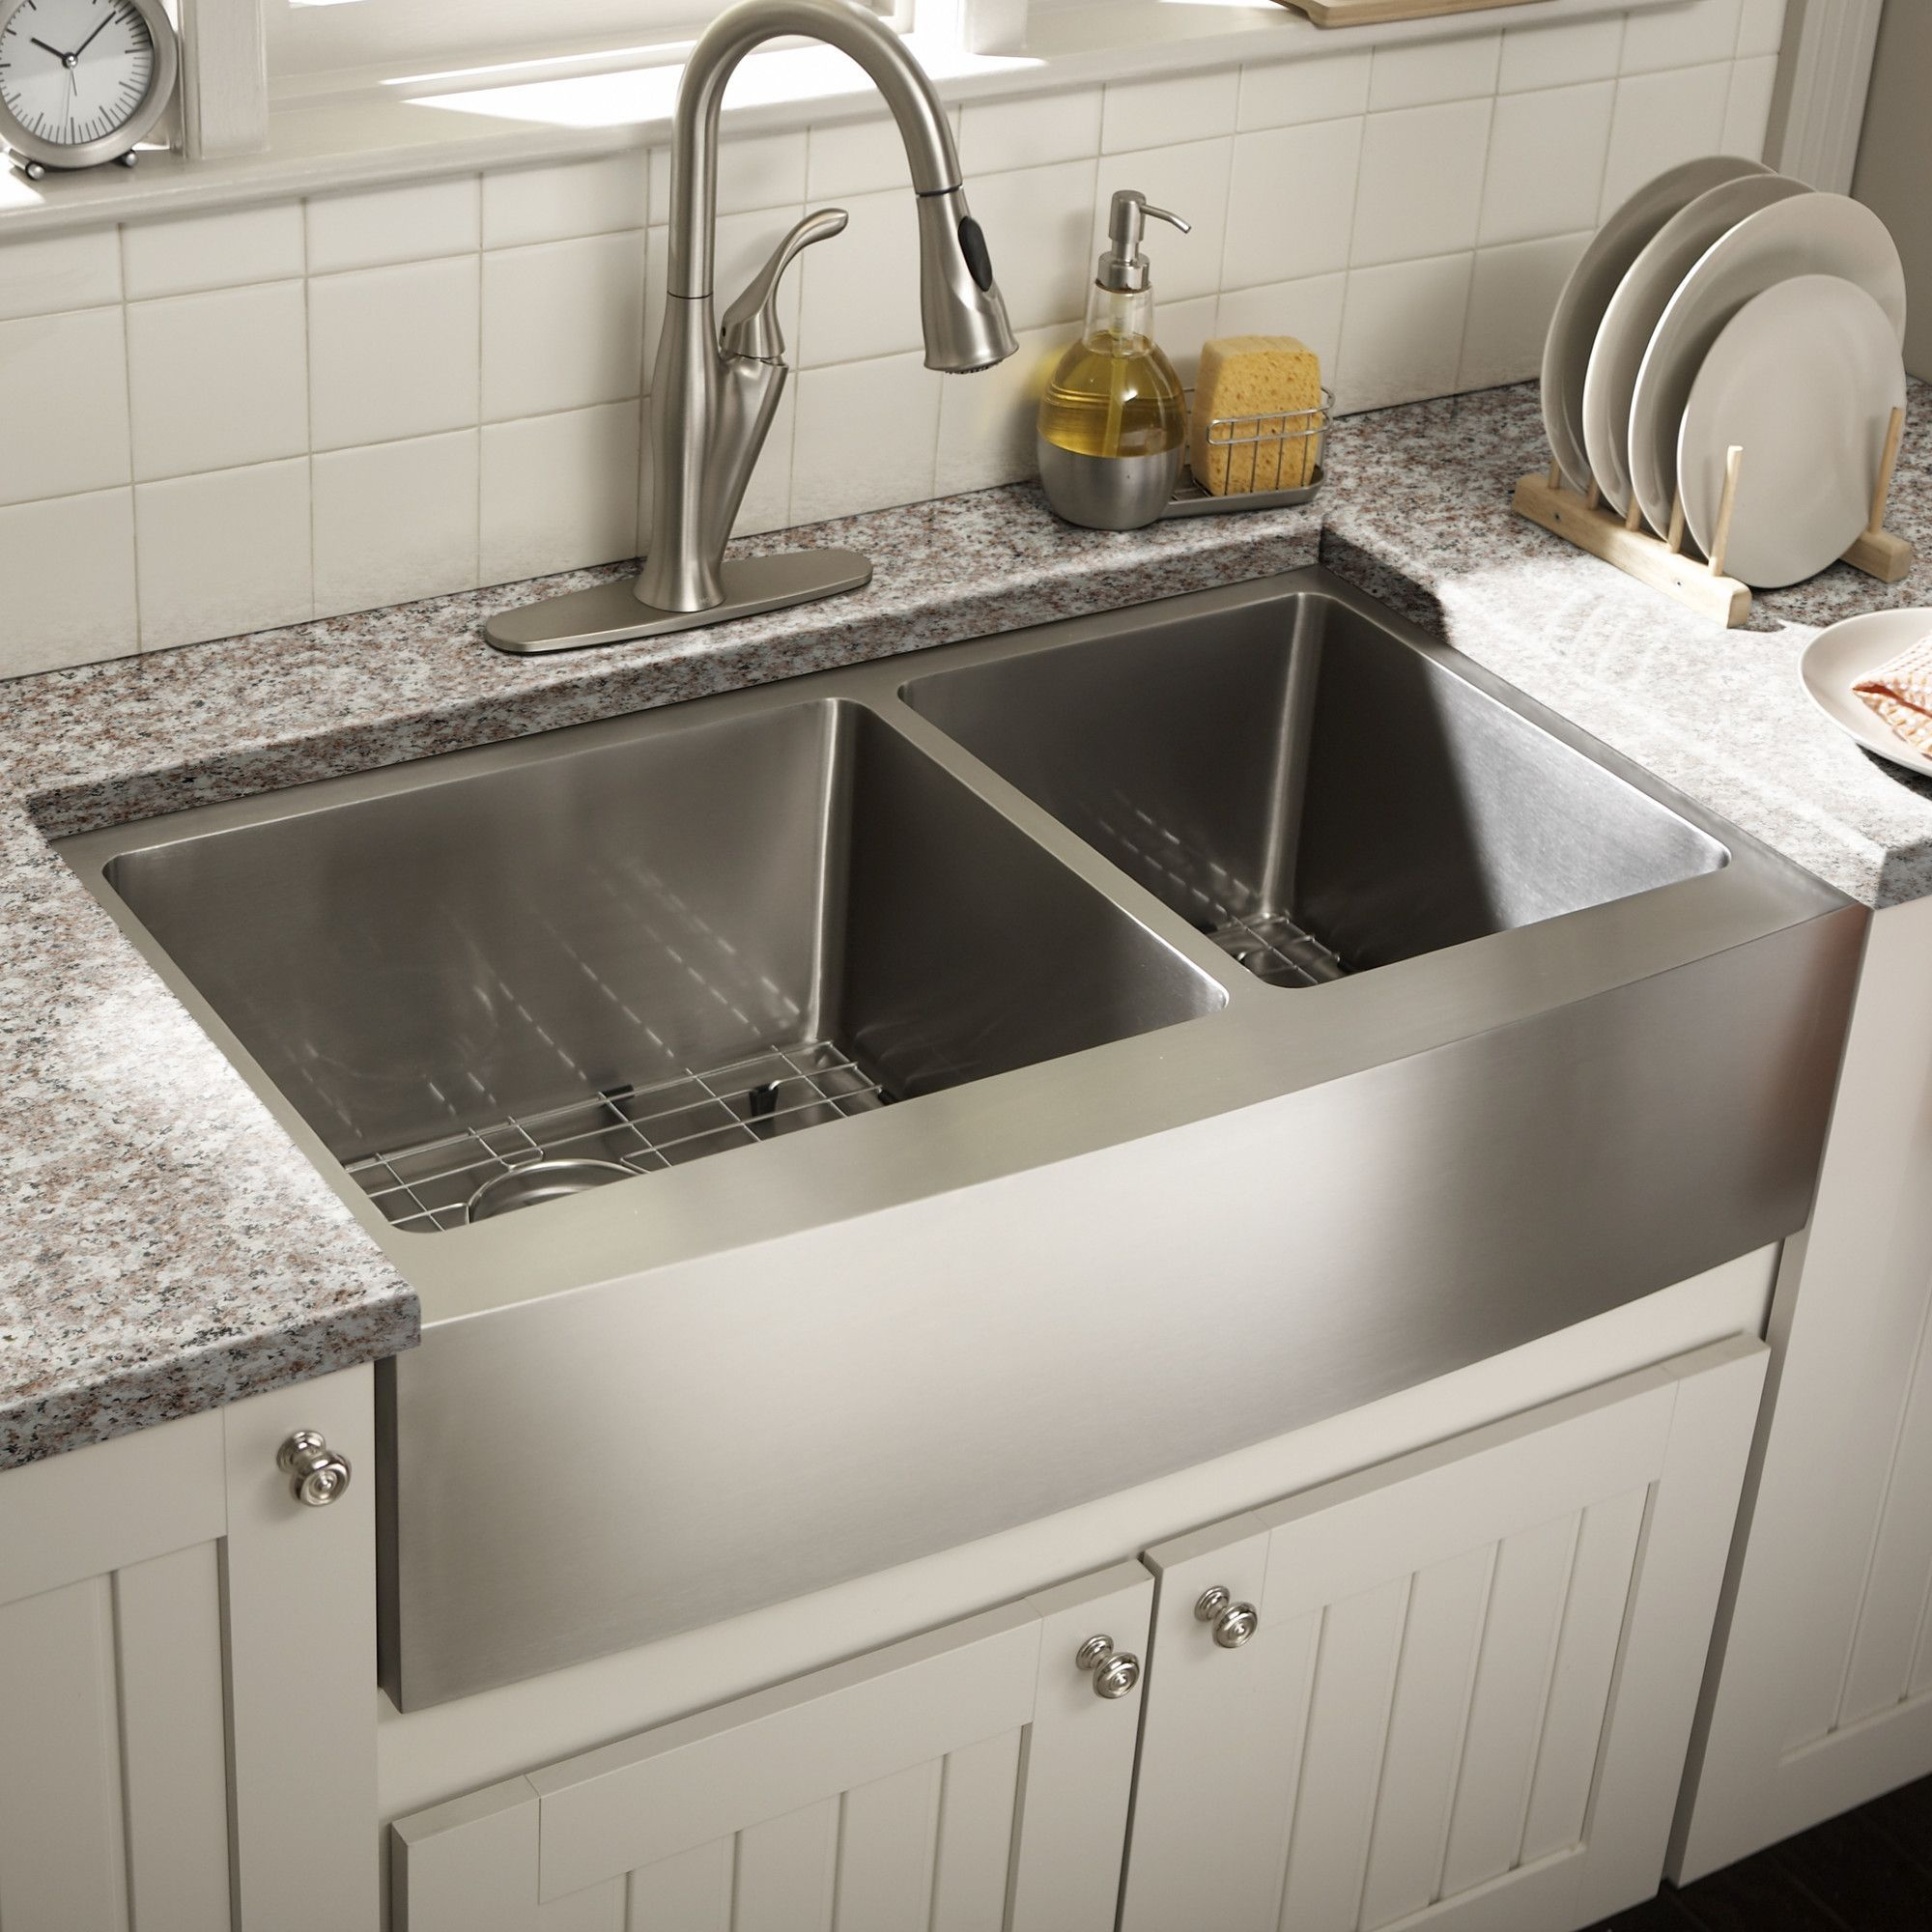 kitchen sink sizes Elkay Gourmet 43 22 Self Rimming Single Bowl Kitchen Sink